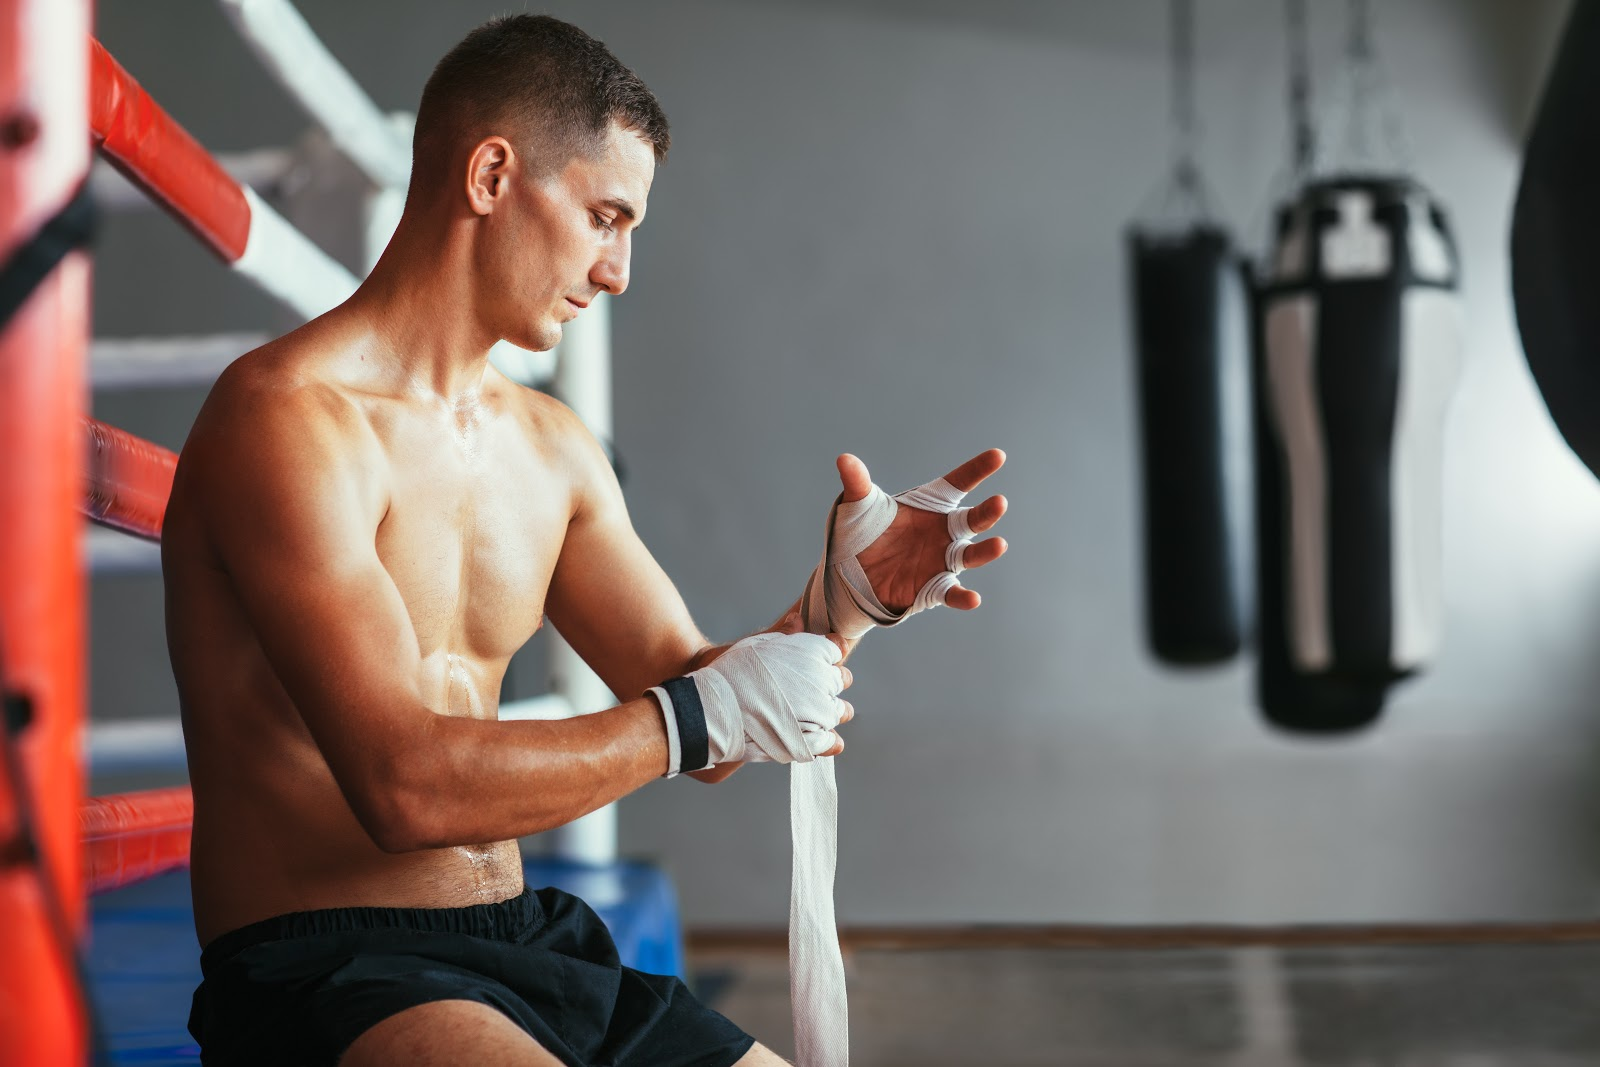 Shirtless man wrapping his hands sitting on the edge of the boxing ring a boxing gym.